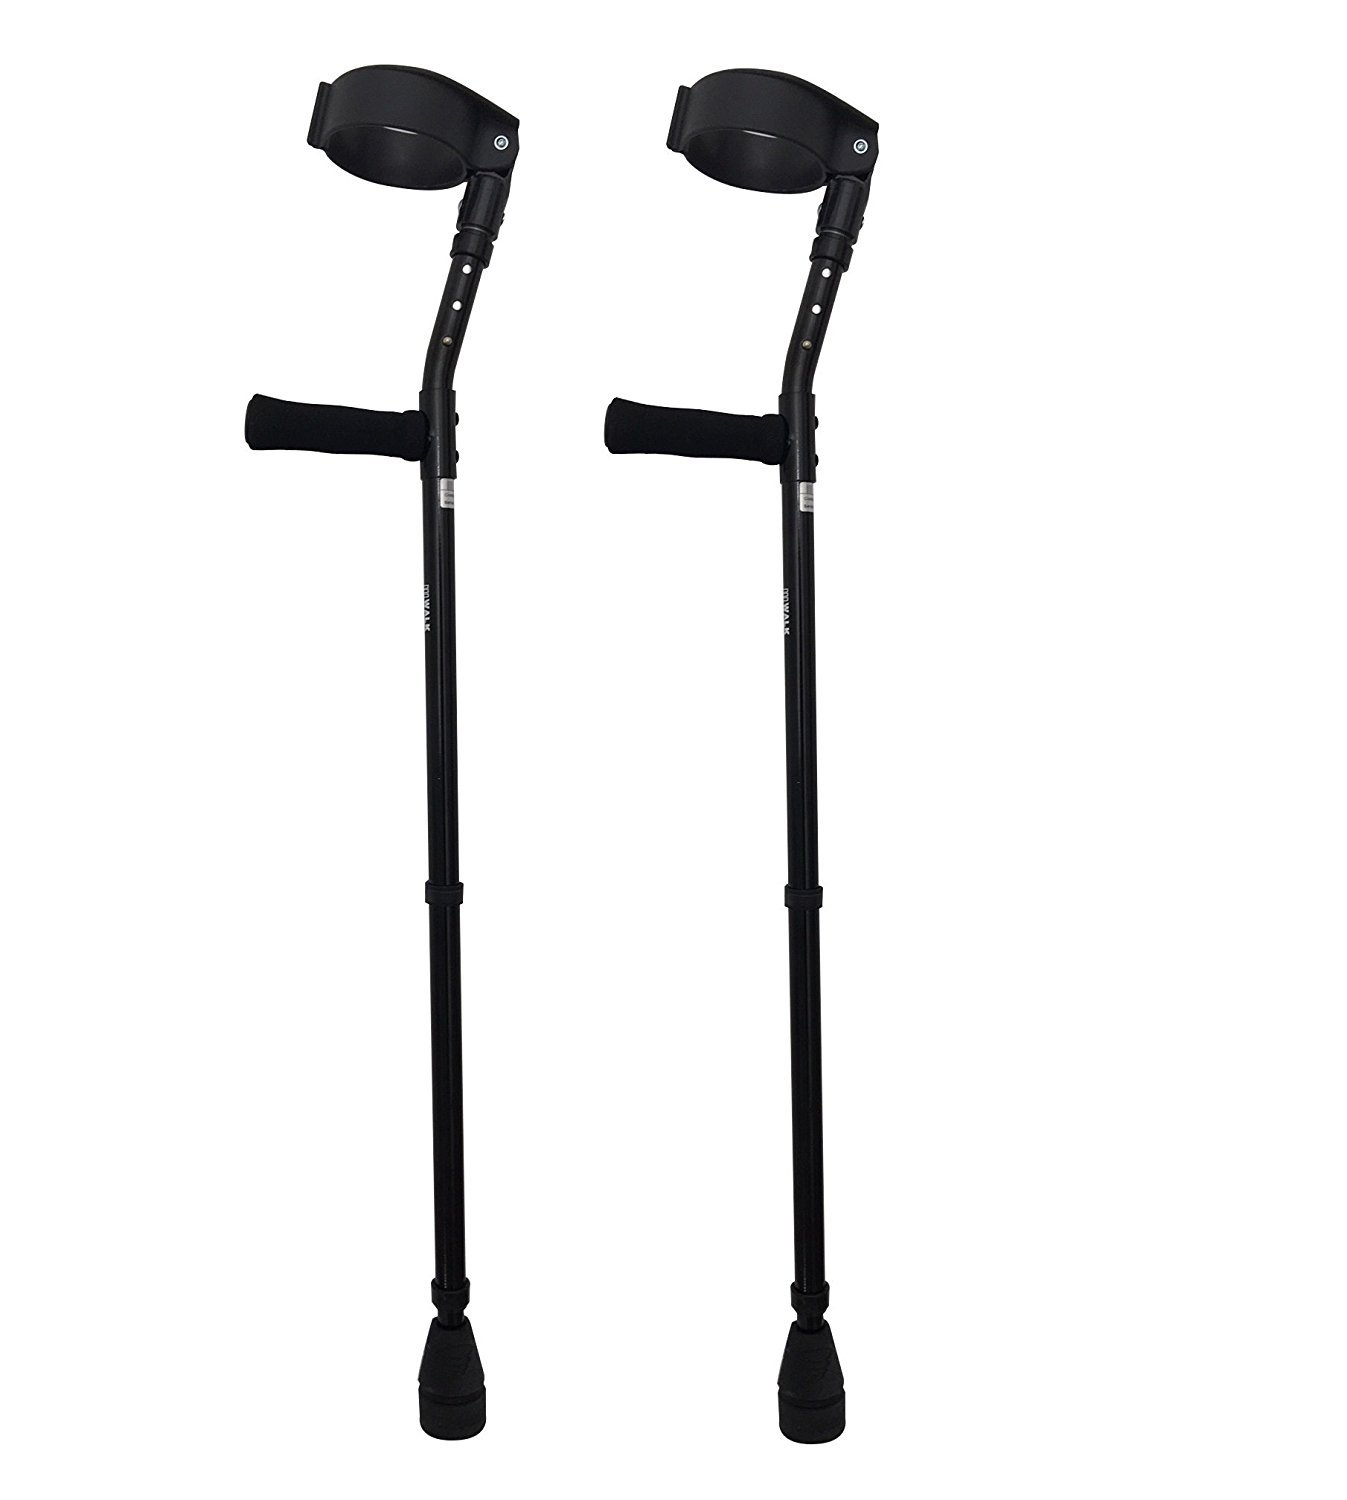 Thomas Fetterman Walk Easy 490 4'' Cuff Adjustable Forearm Crutches with Choice of Tips (Adjustable with Tornado Gel Tip)